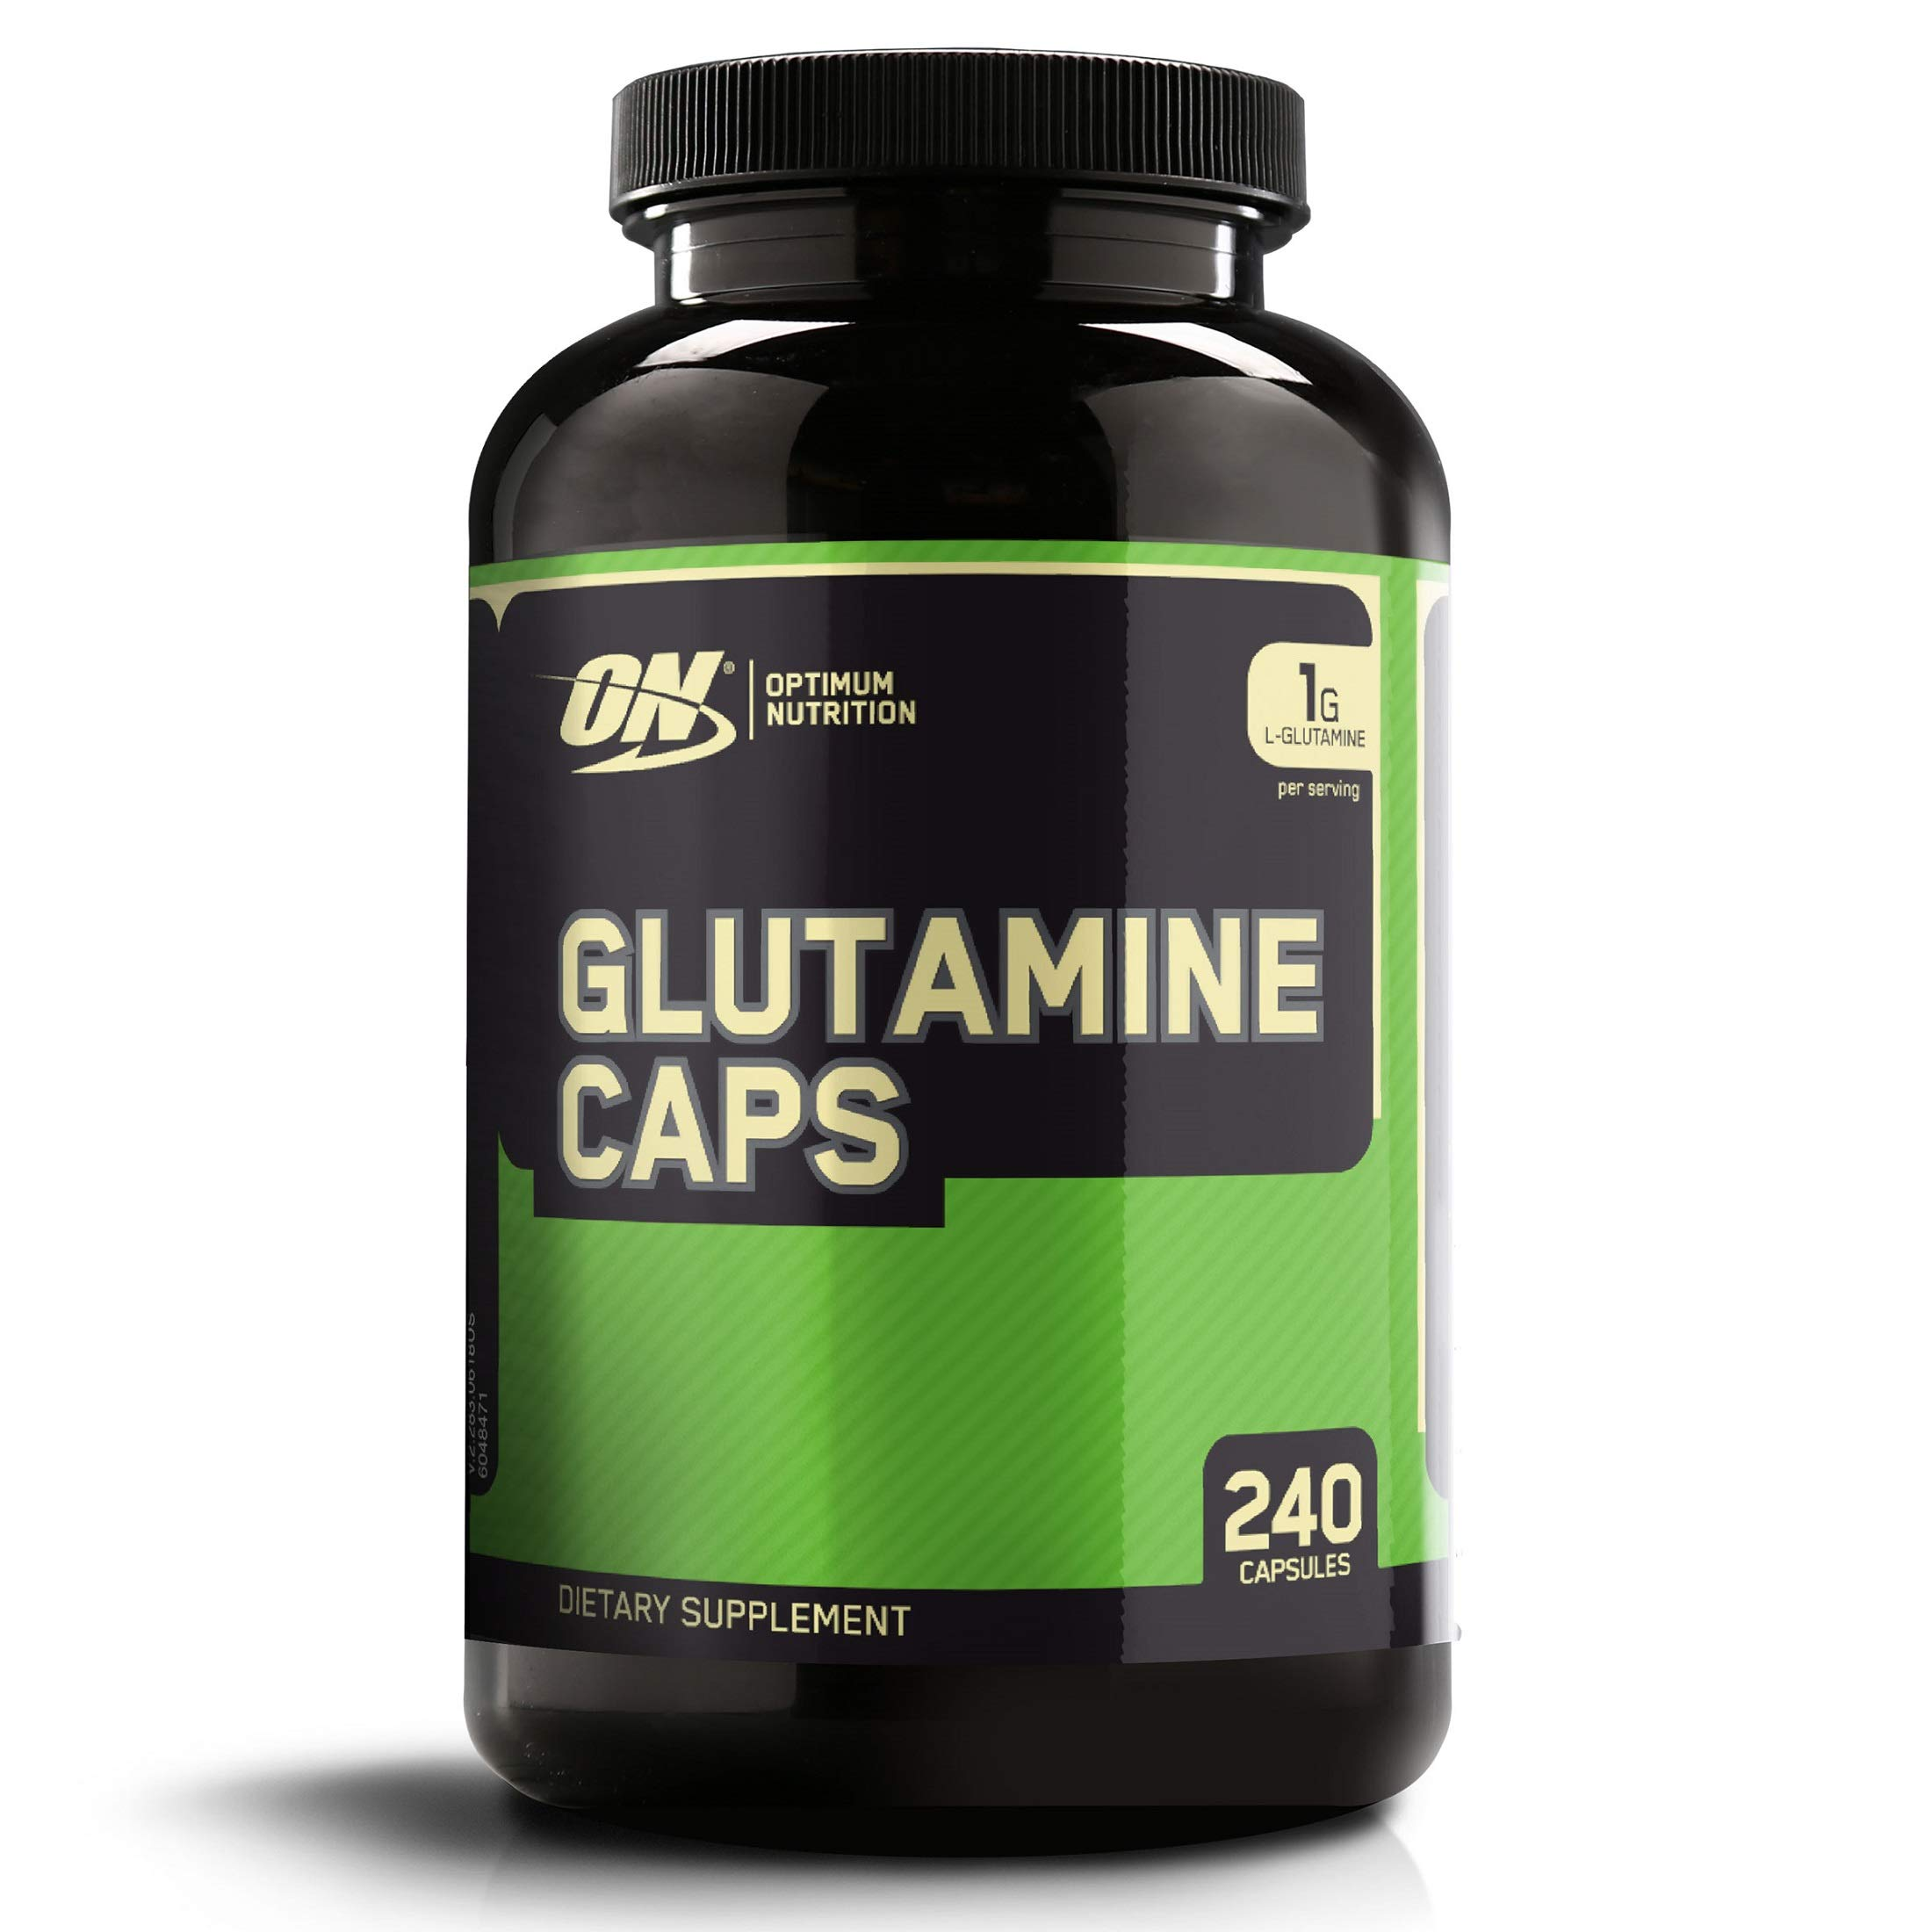 OPTIMUM NUTRITION L-Glutamine Muscle Recovery Capsules, 1000mg, 240 Count (Package May Vary) by Optimum Nutrition